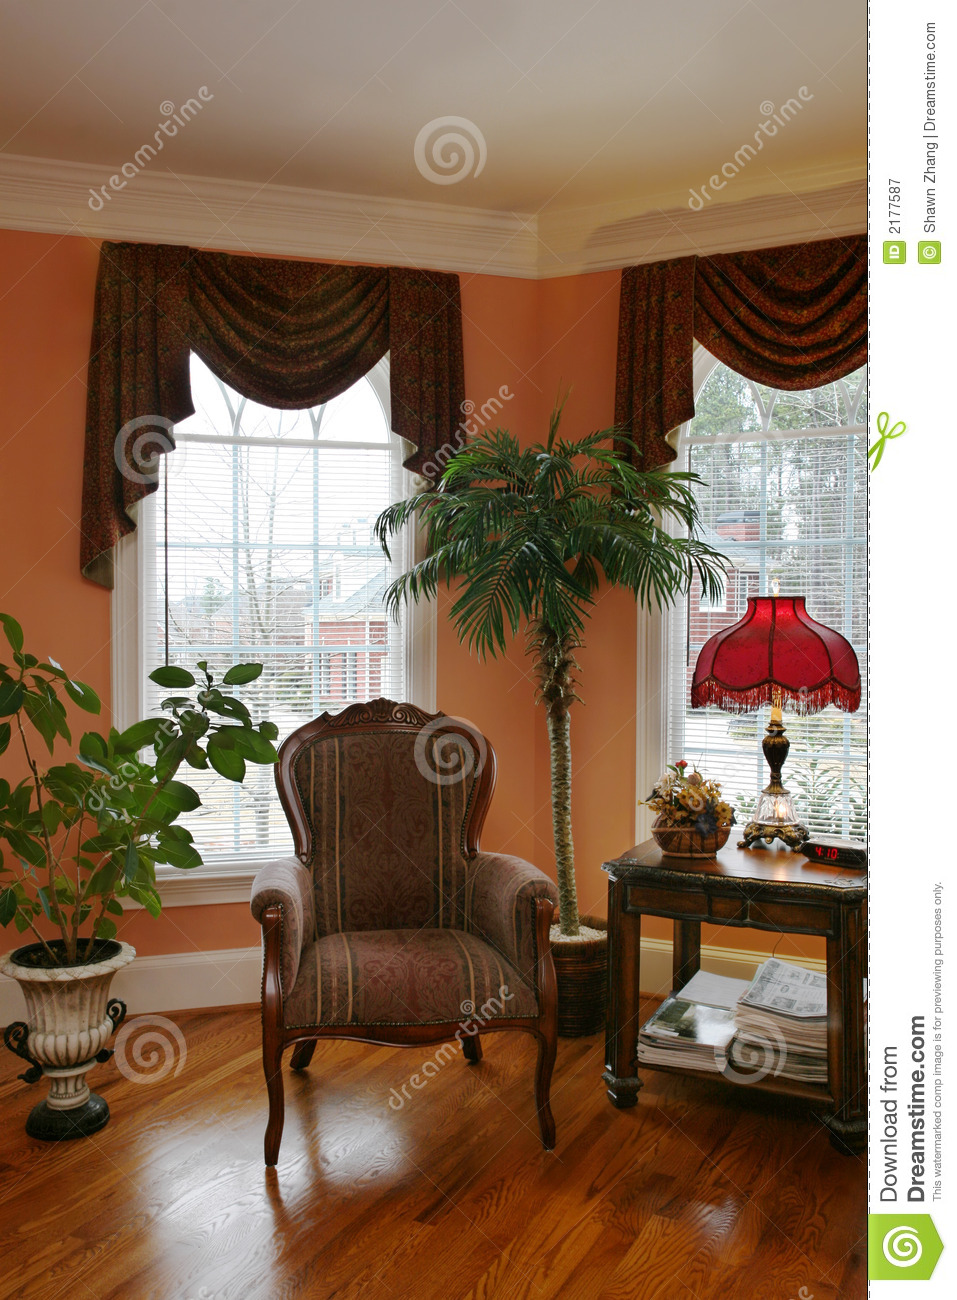 Living Room With Bay Window Royalty Free Stock Photography Image 2177587